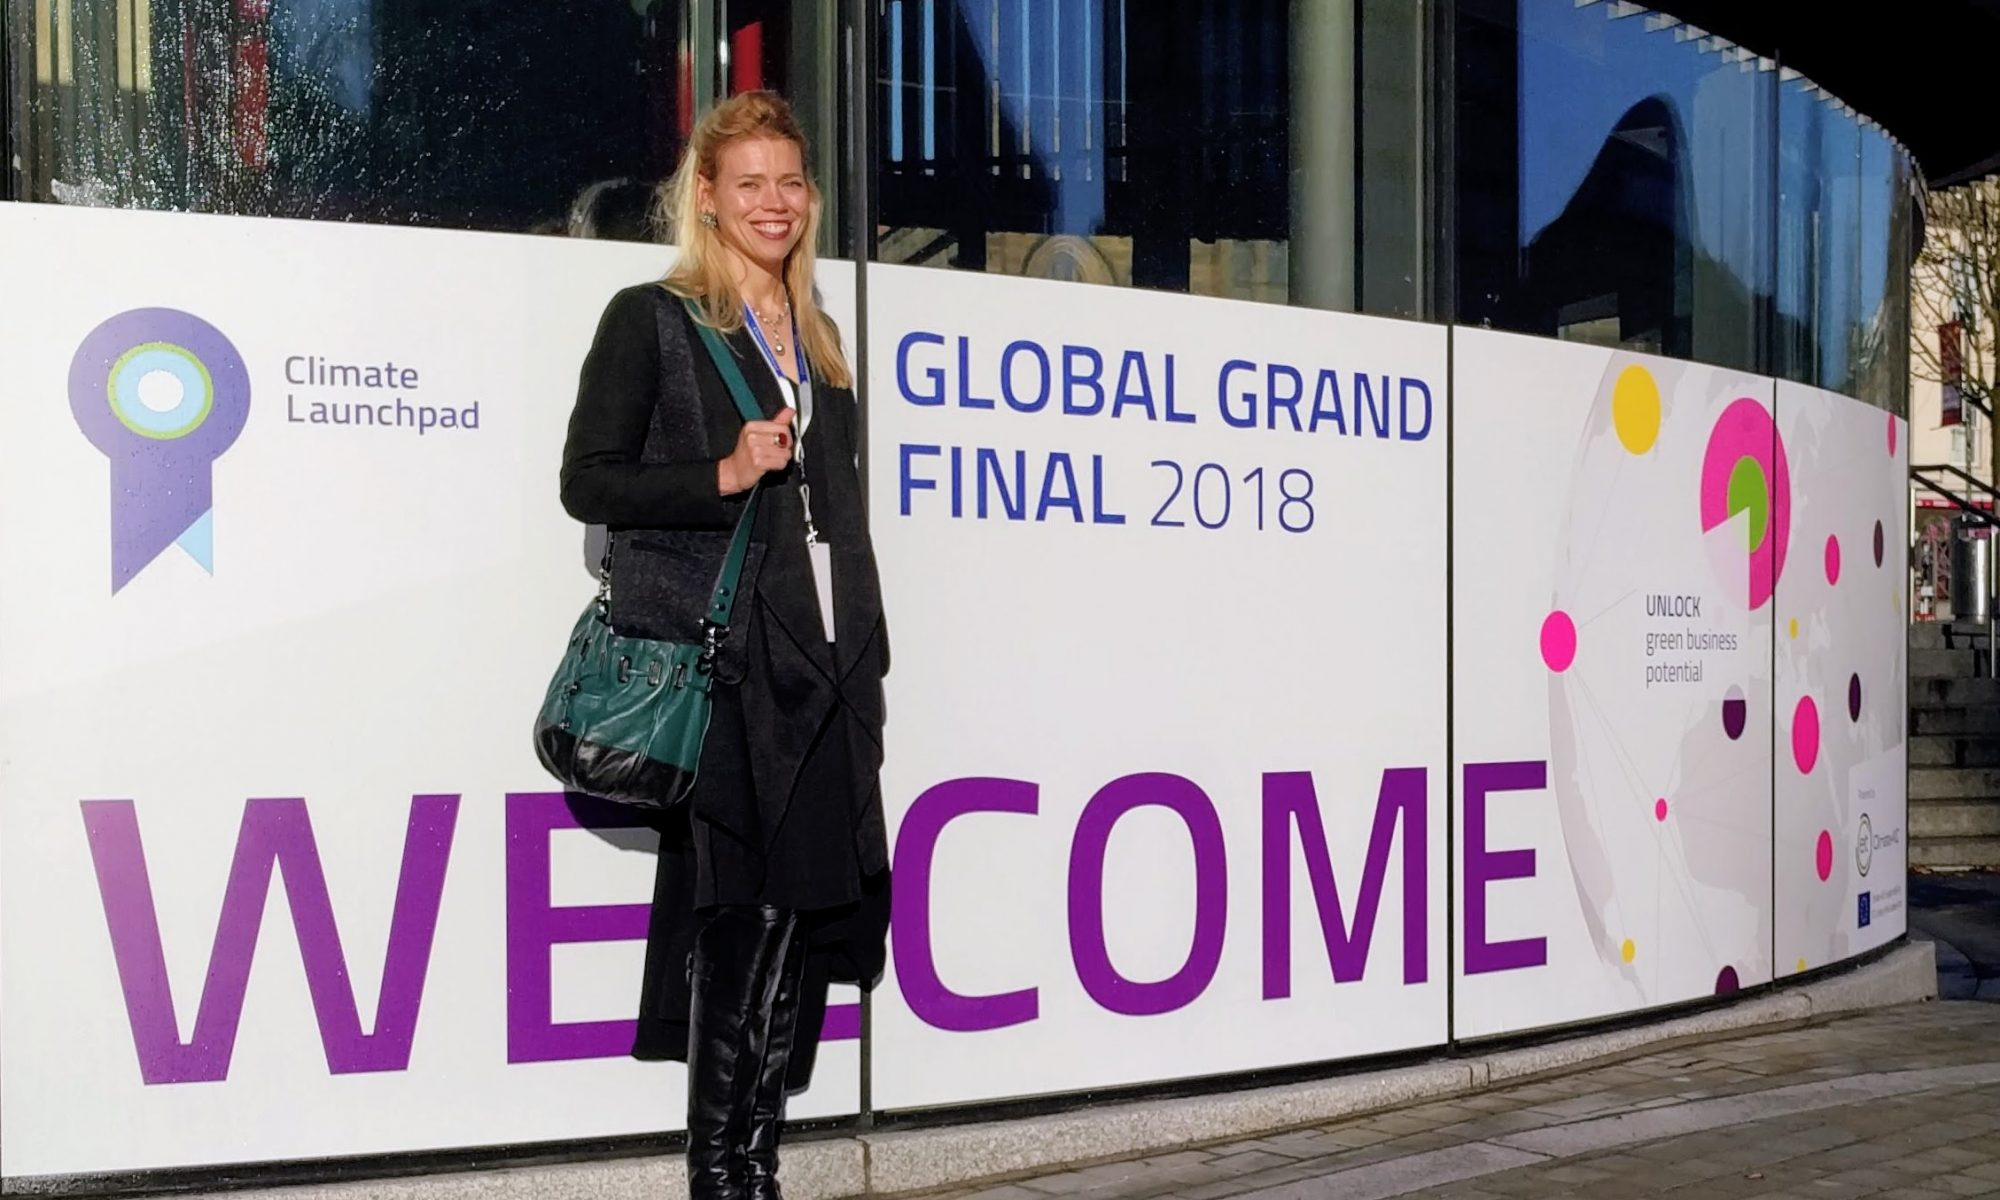 Camille Reed at the 2018 ClimateLaunchpad Global Grand Final in Edinburgh